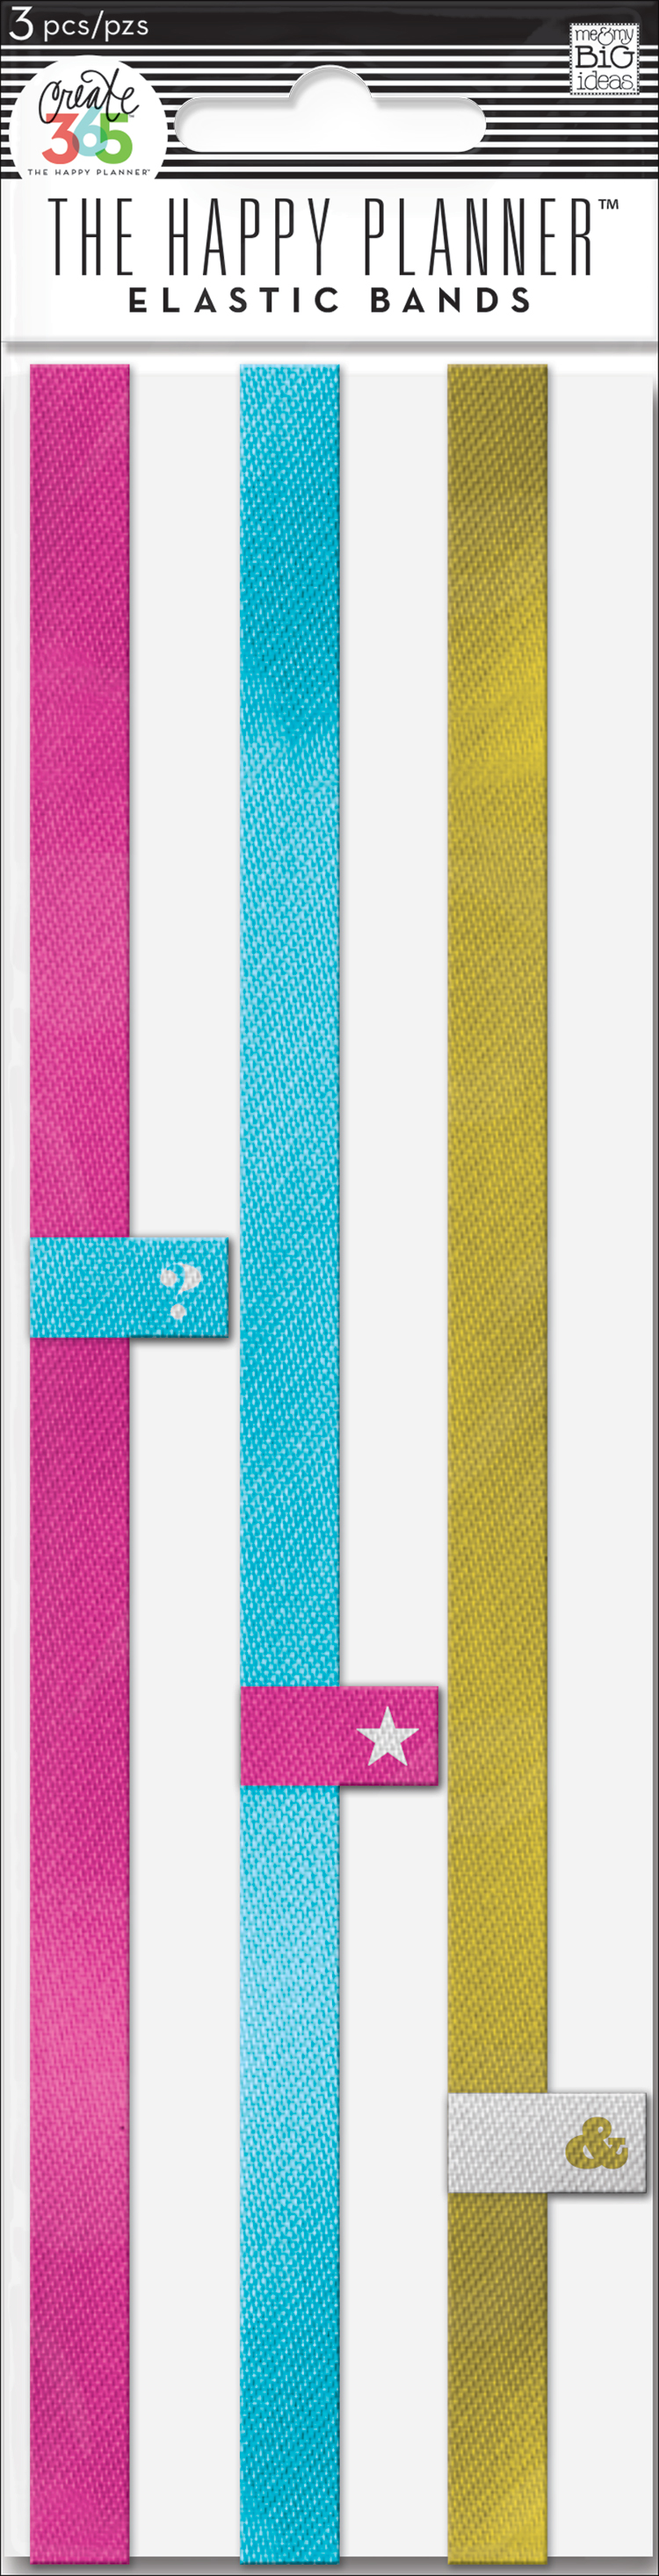 Elastic Bands for The Happy Planner™   me & my BIG ideas.jpg